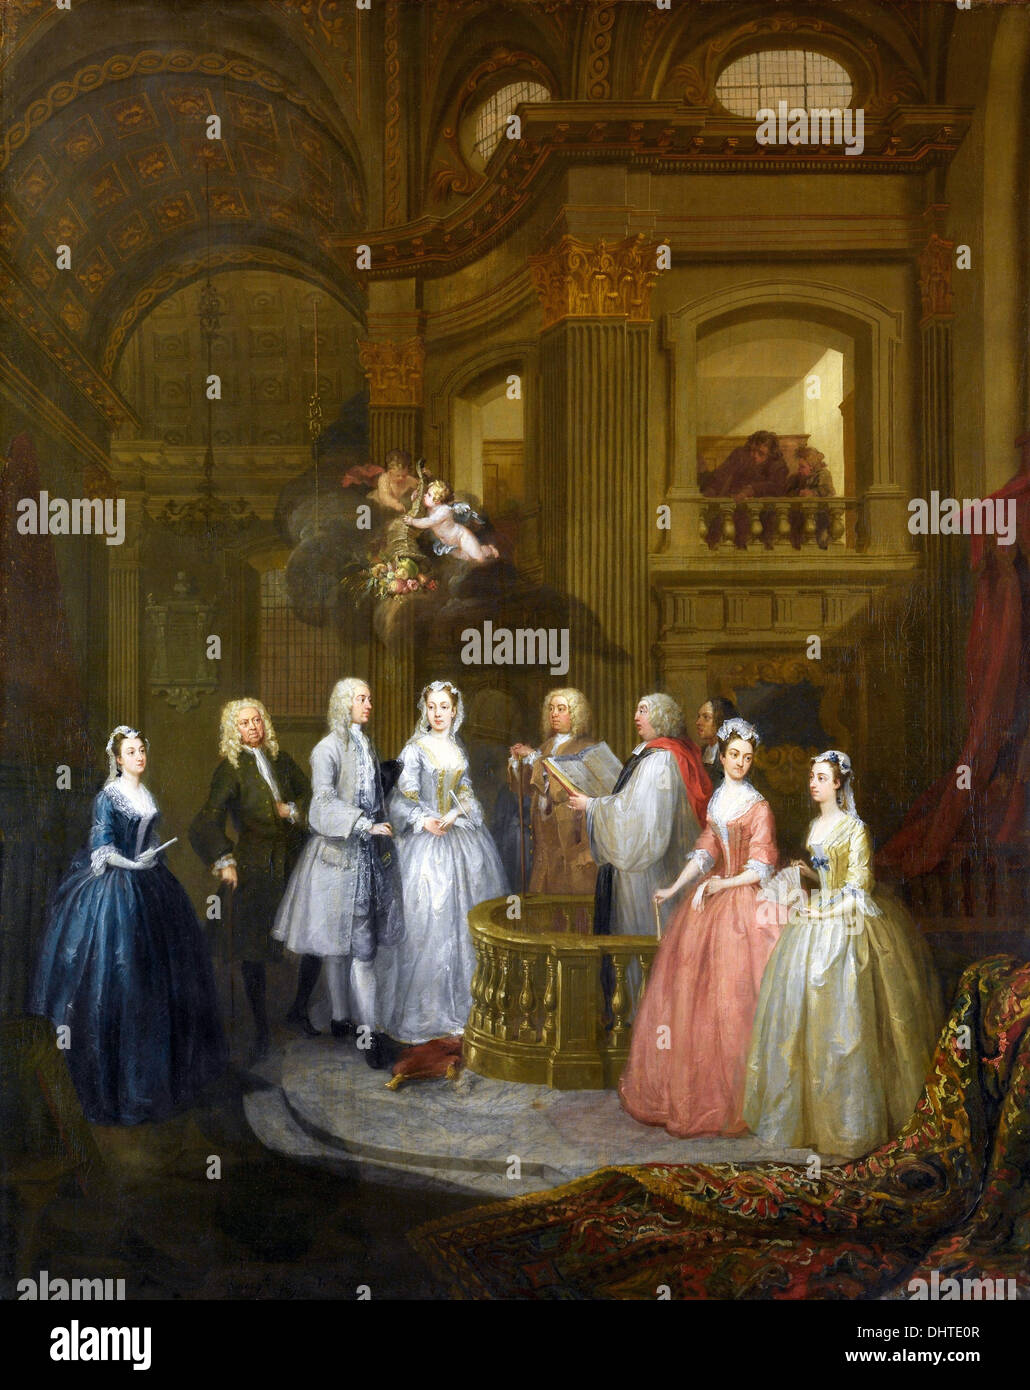 Wedding of Stephen Beckingham and Mary Cox - by William Hogarth, 1729 Stock Photo